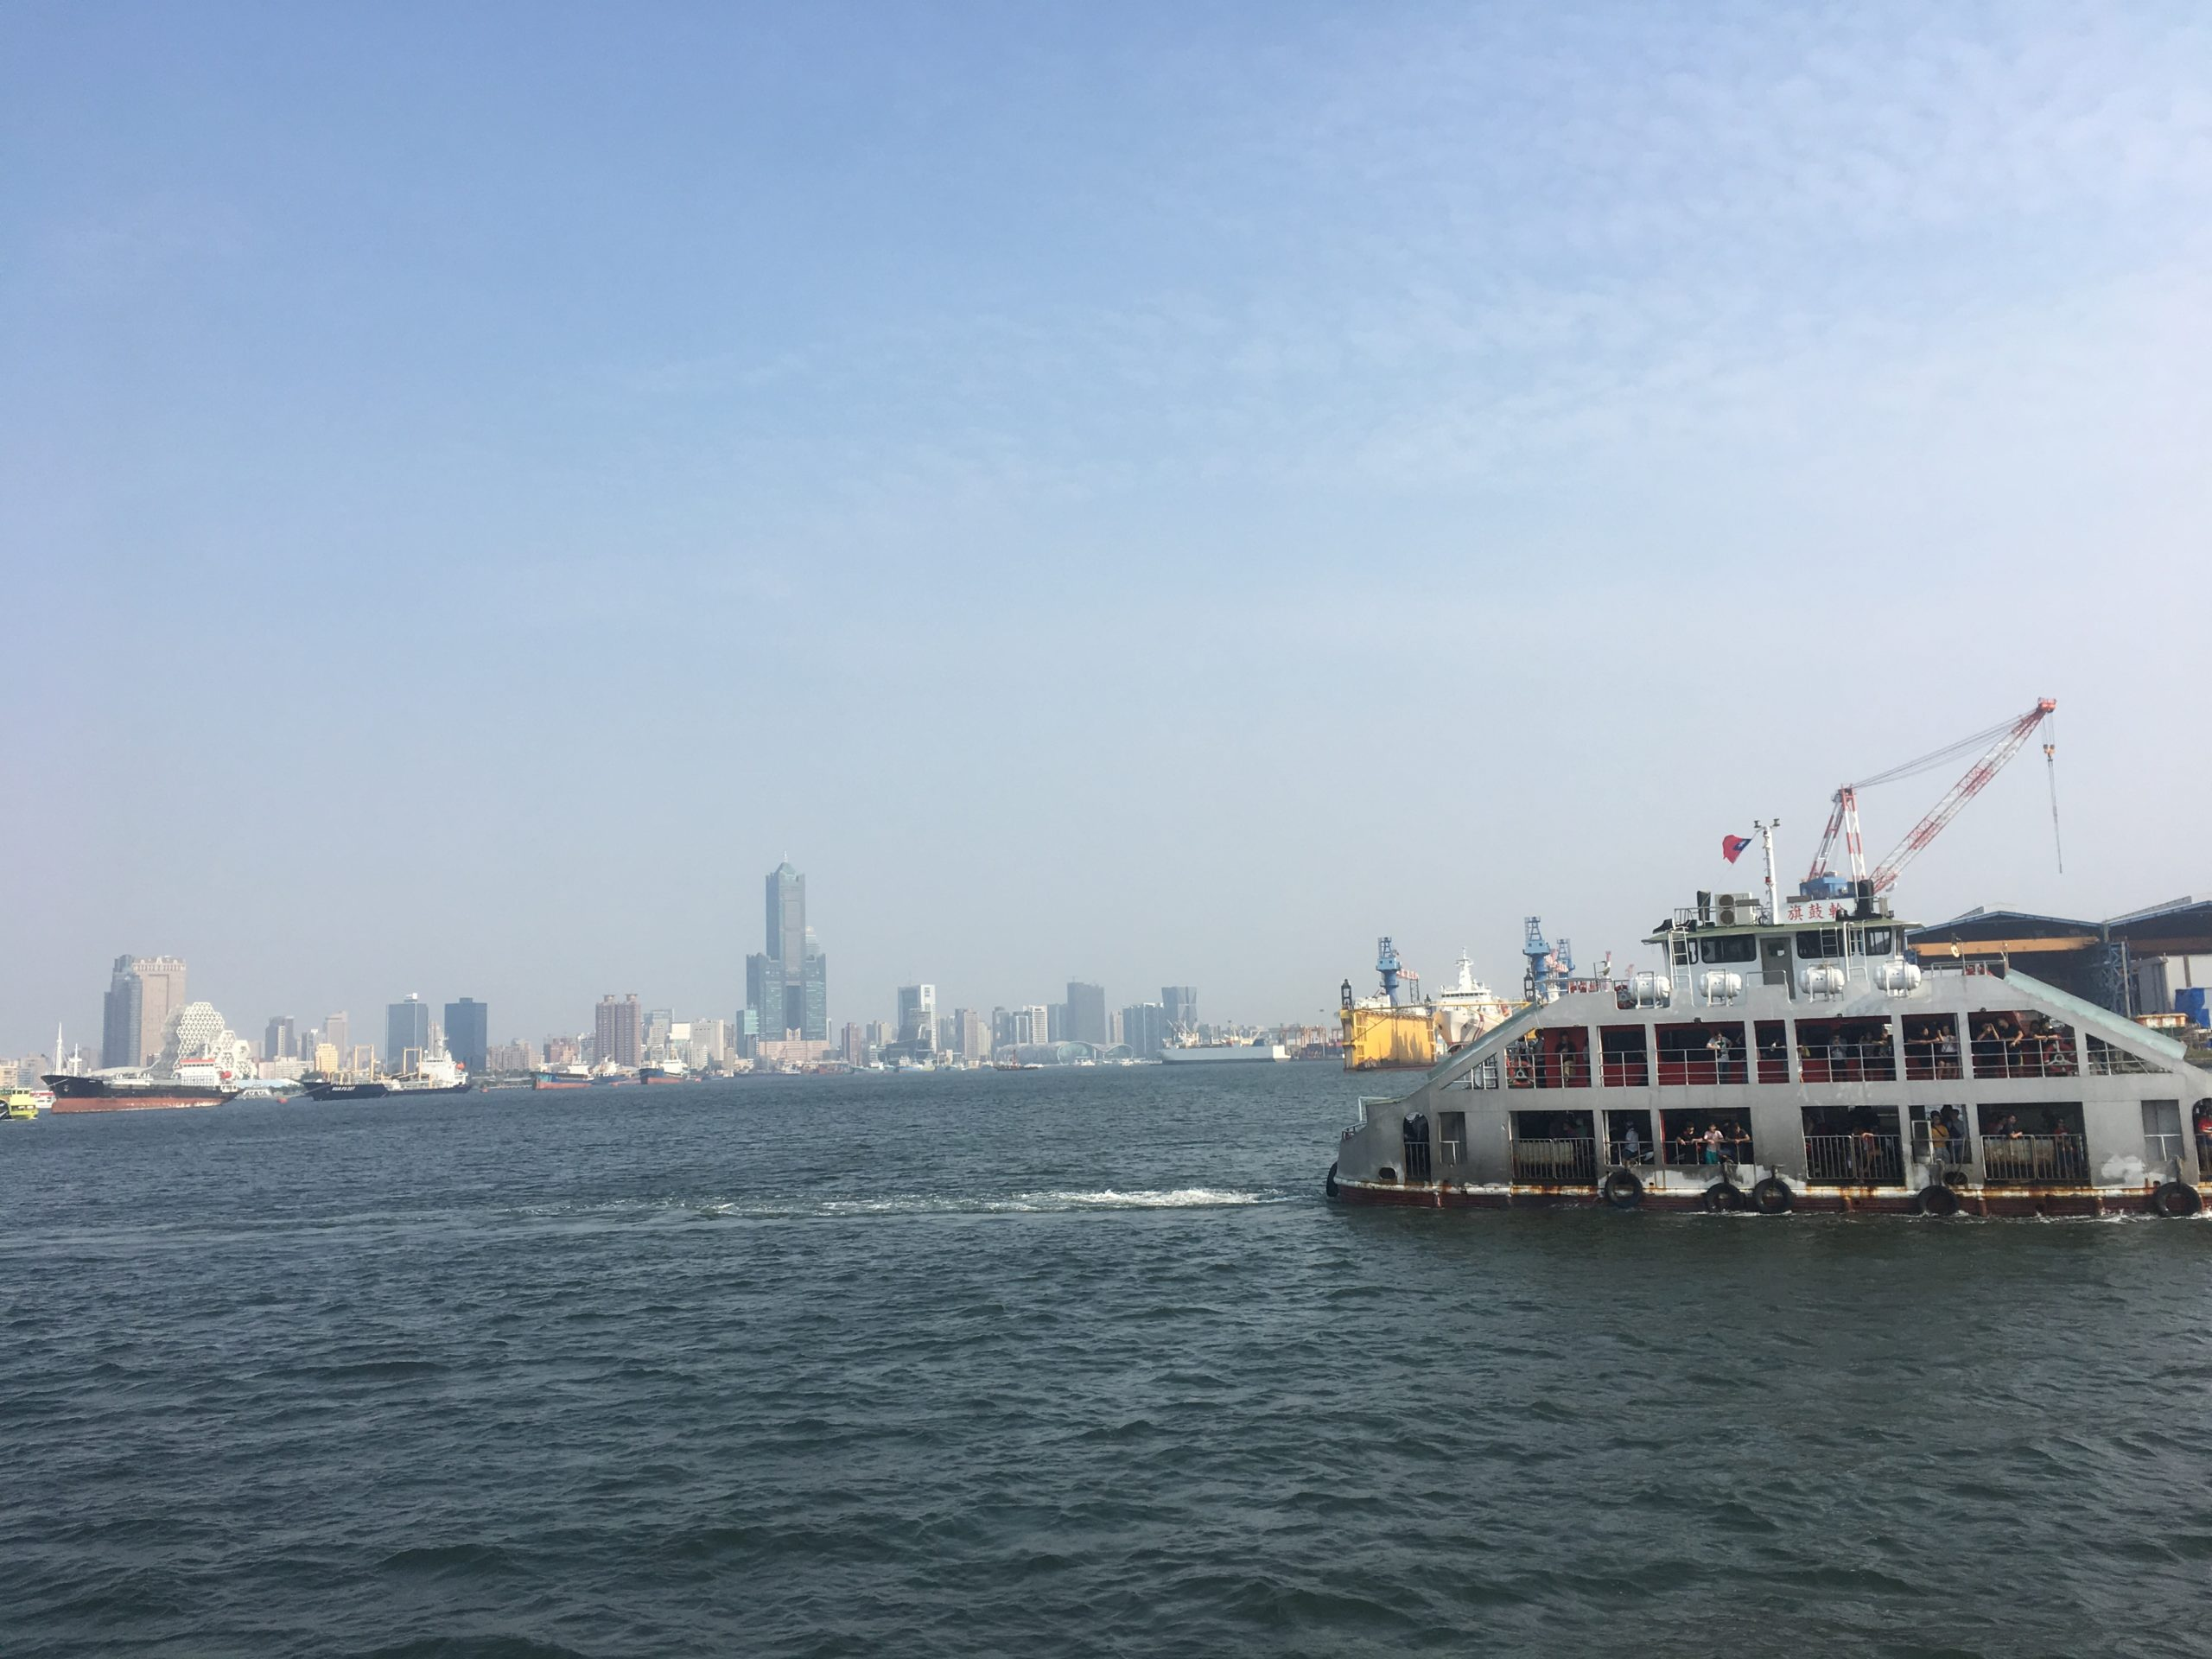 Kaohsiung Harbour from ferry